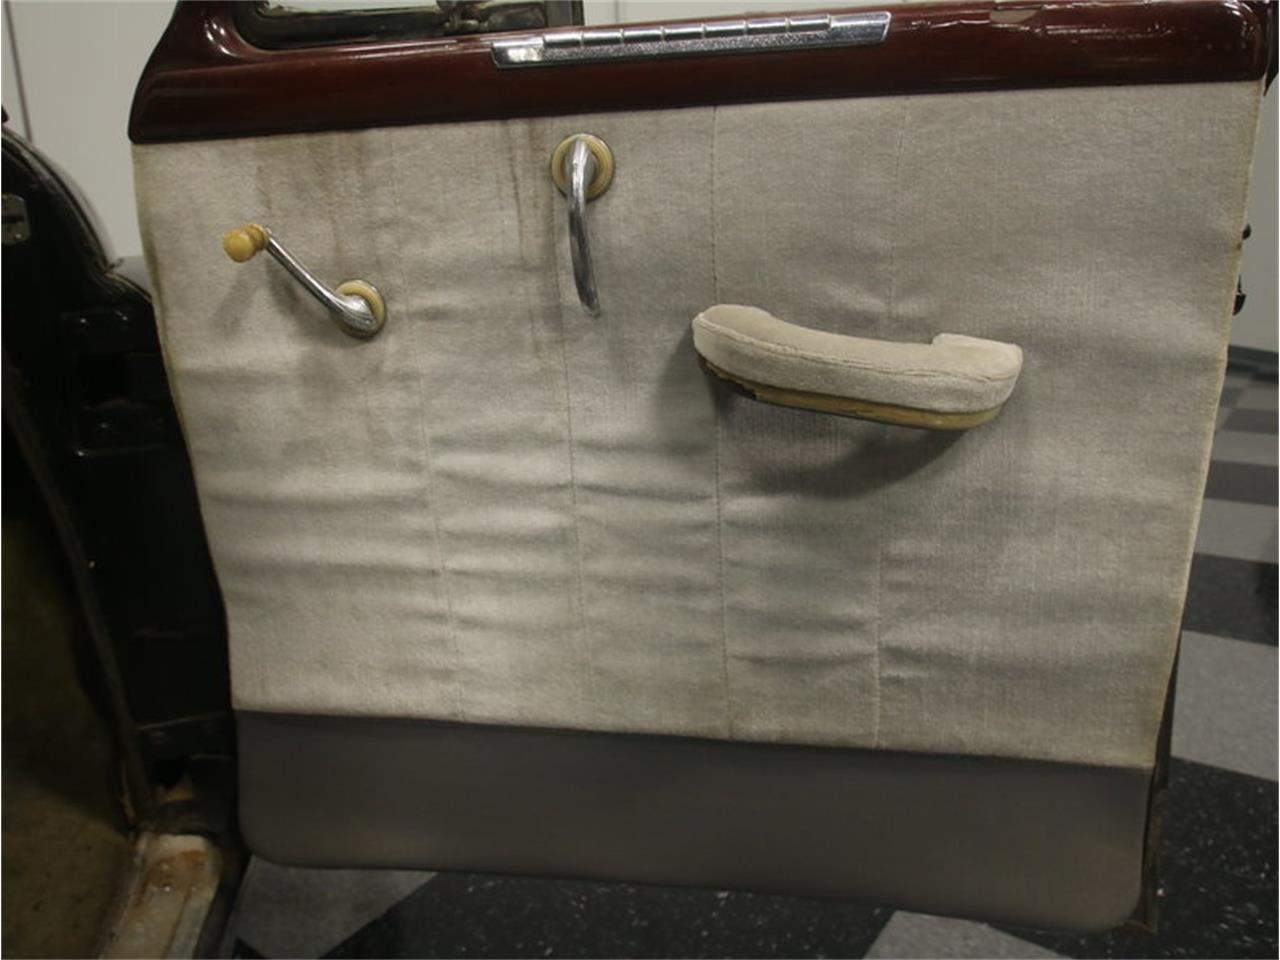 Large Picture of '49 Special Deluxe - $8,995.00 Offered by Streetside Classics - Atlanta - L551